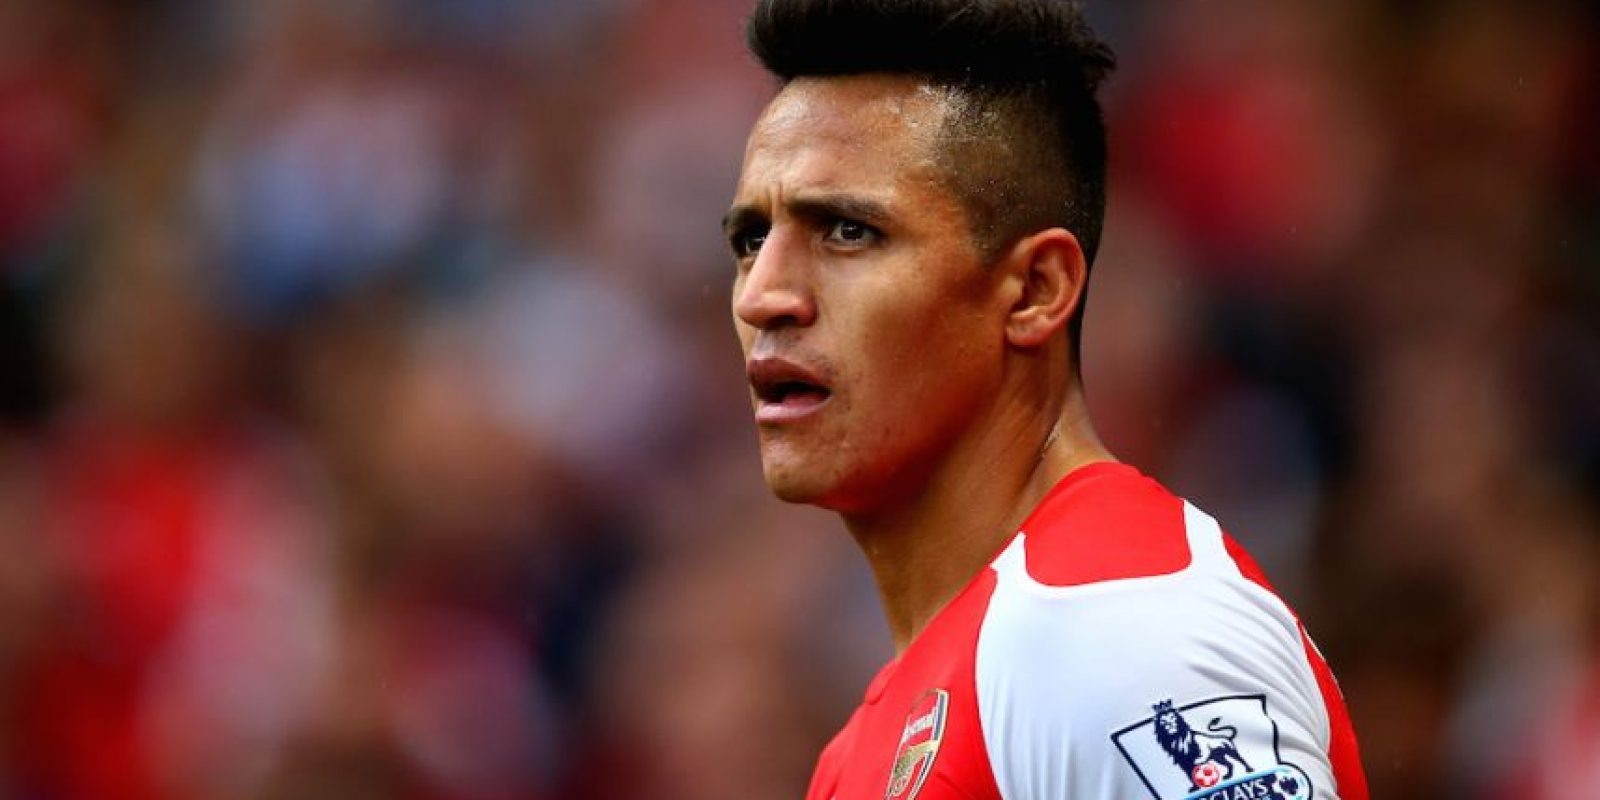 Alexis Sánchez Foto: Getty Images